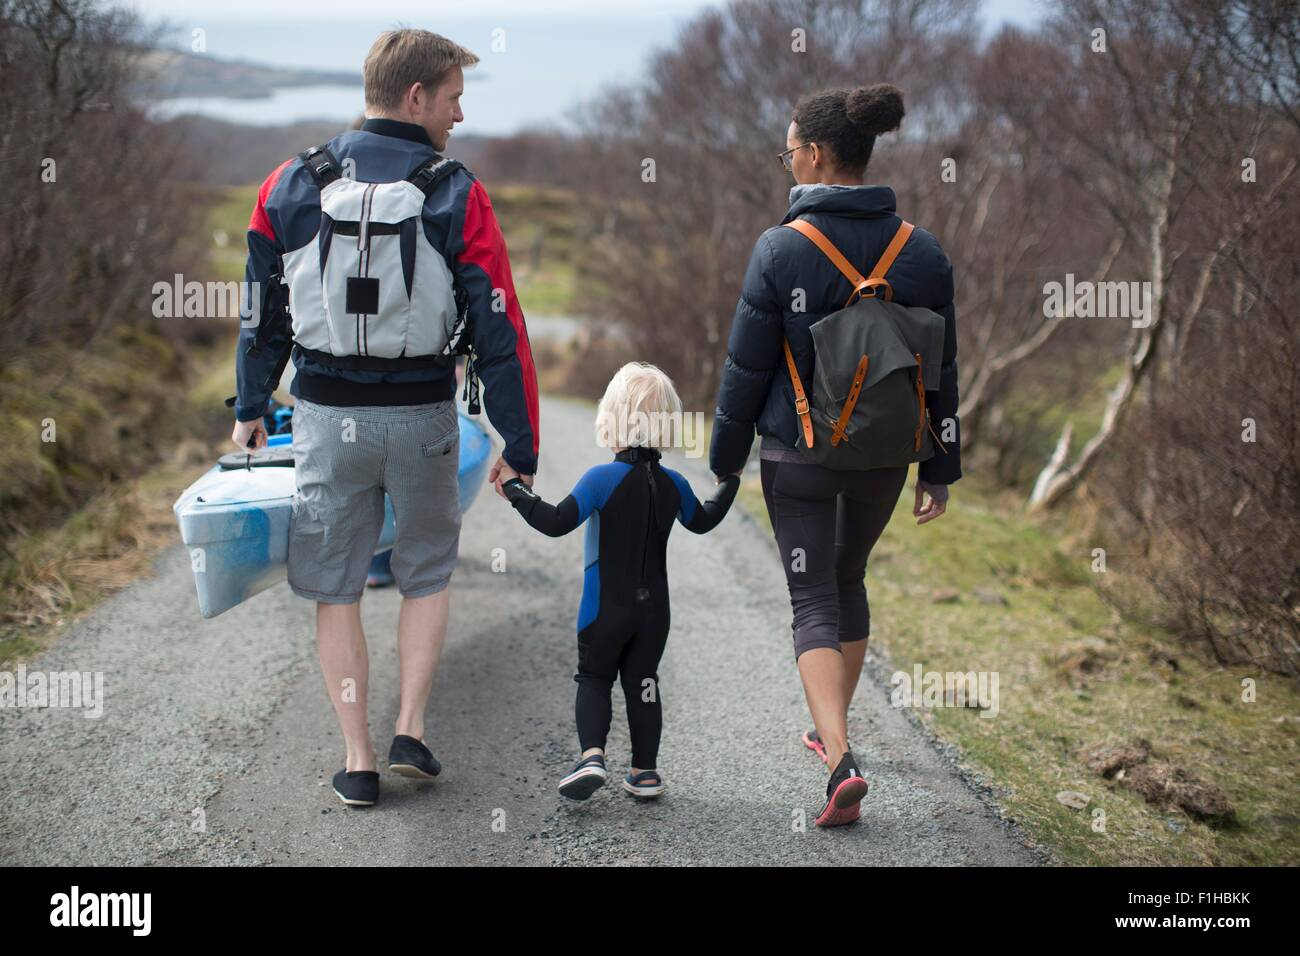 Family walking on country road holding hands, rear view - Stock Image